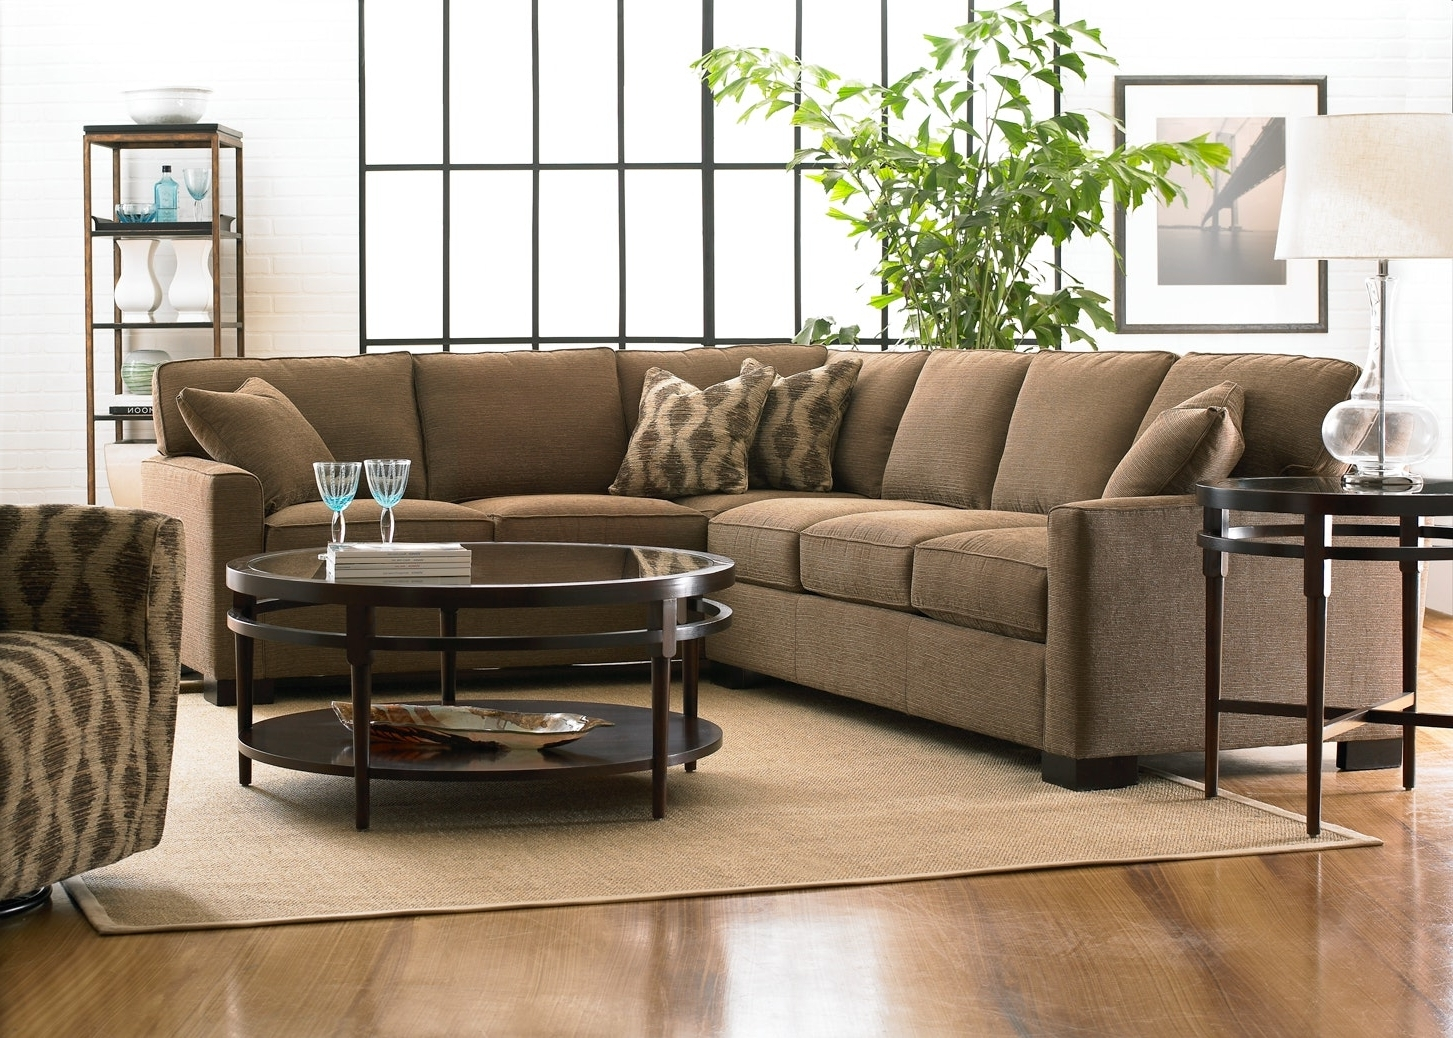 Grey Modern Sectional Modern Sectional Couches Modern Sectional For Well Known Modern Sectional Sofas For Small Spaces (View 8 of 20)